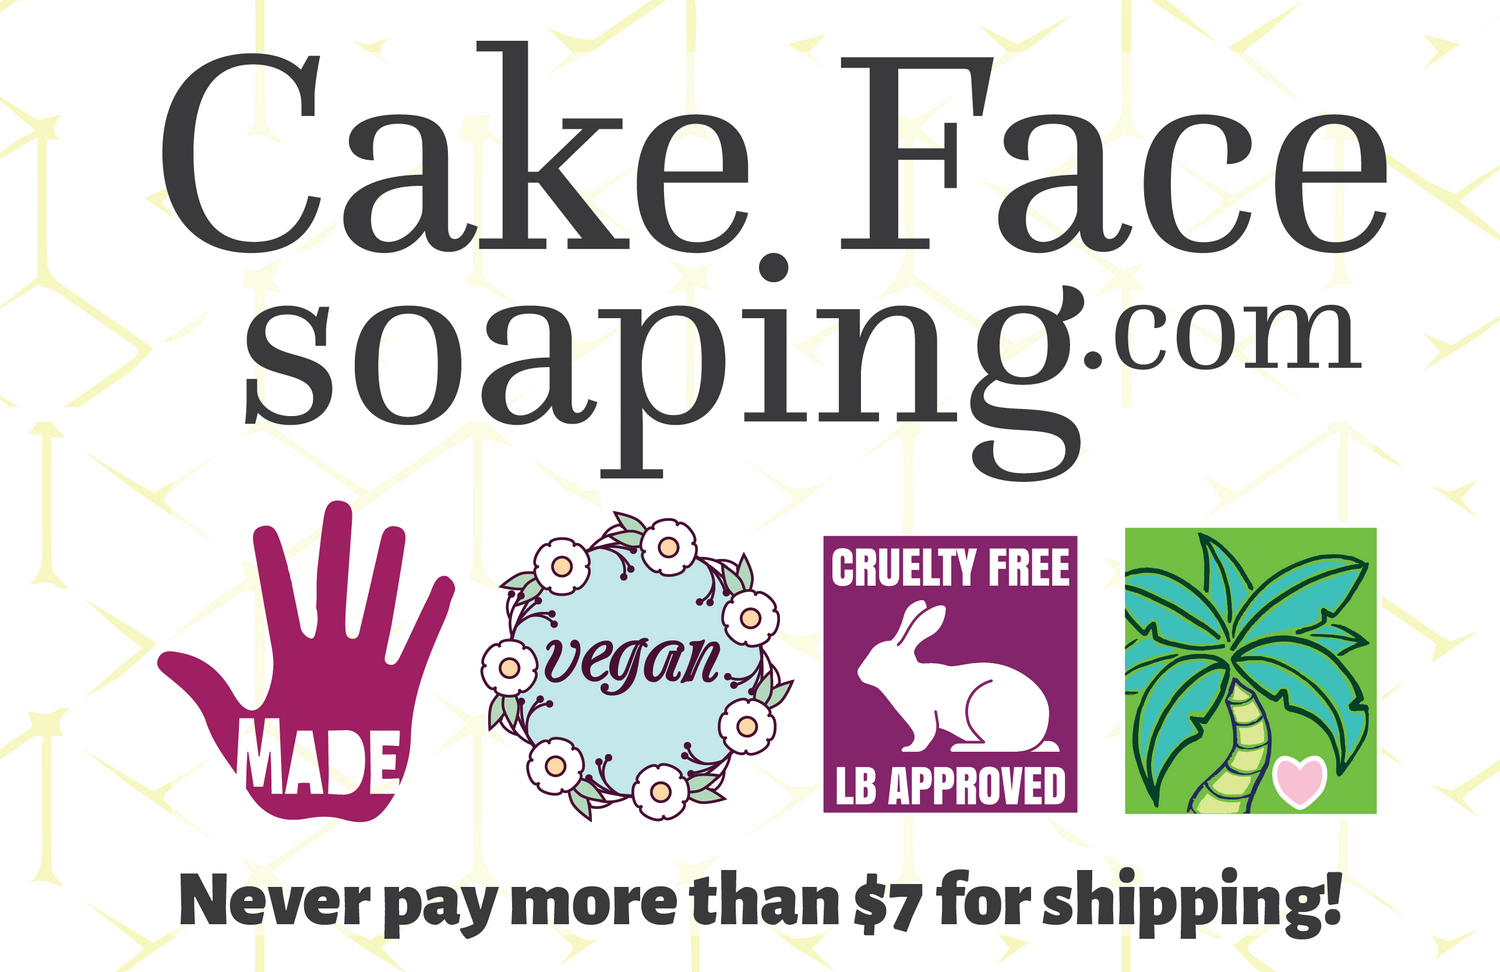 CakeFaceSoaping